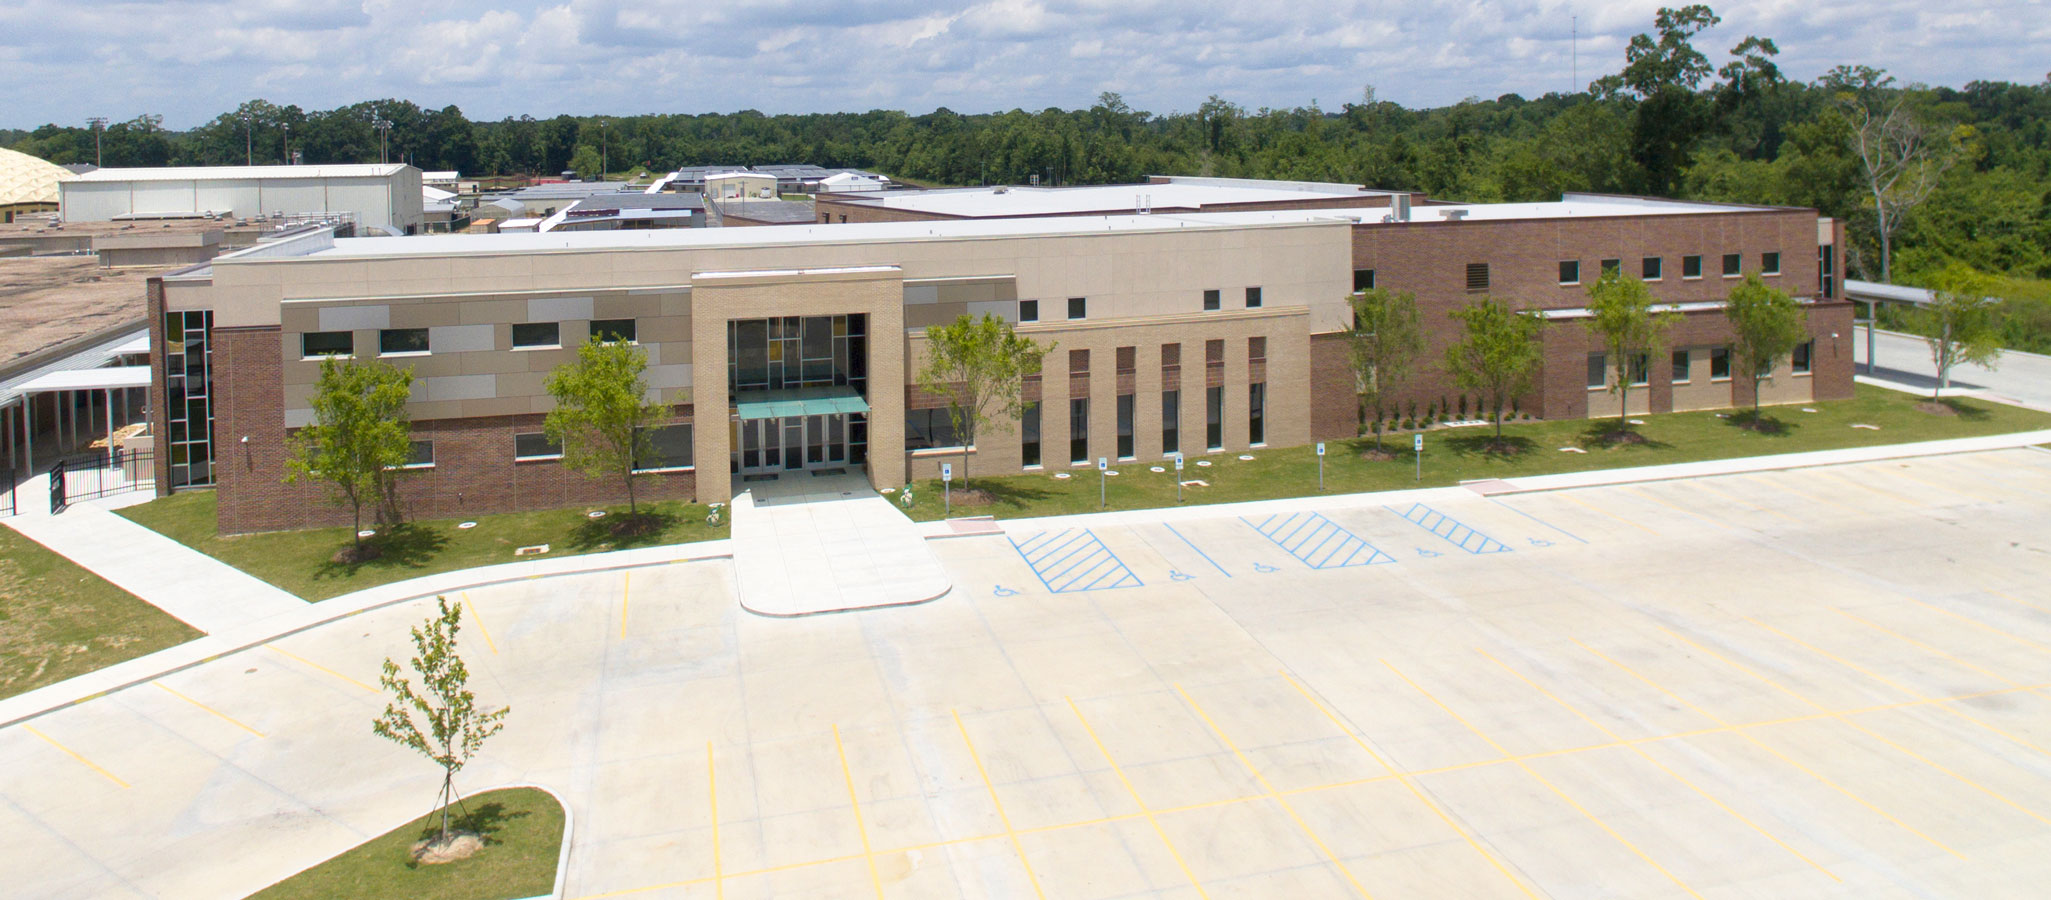 Aerial view of freshman academy and parking lot